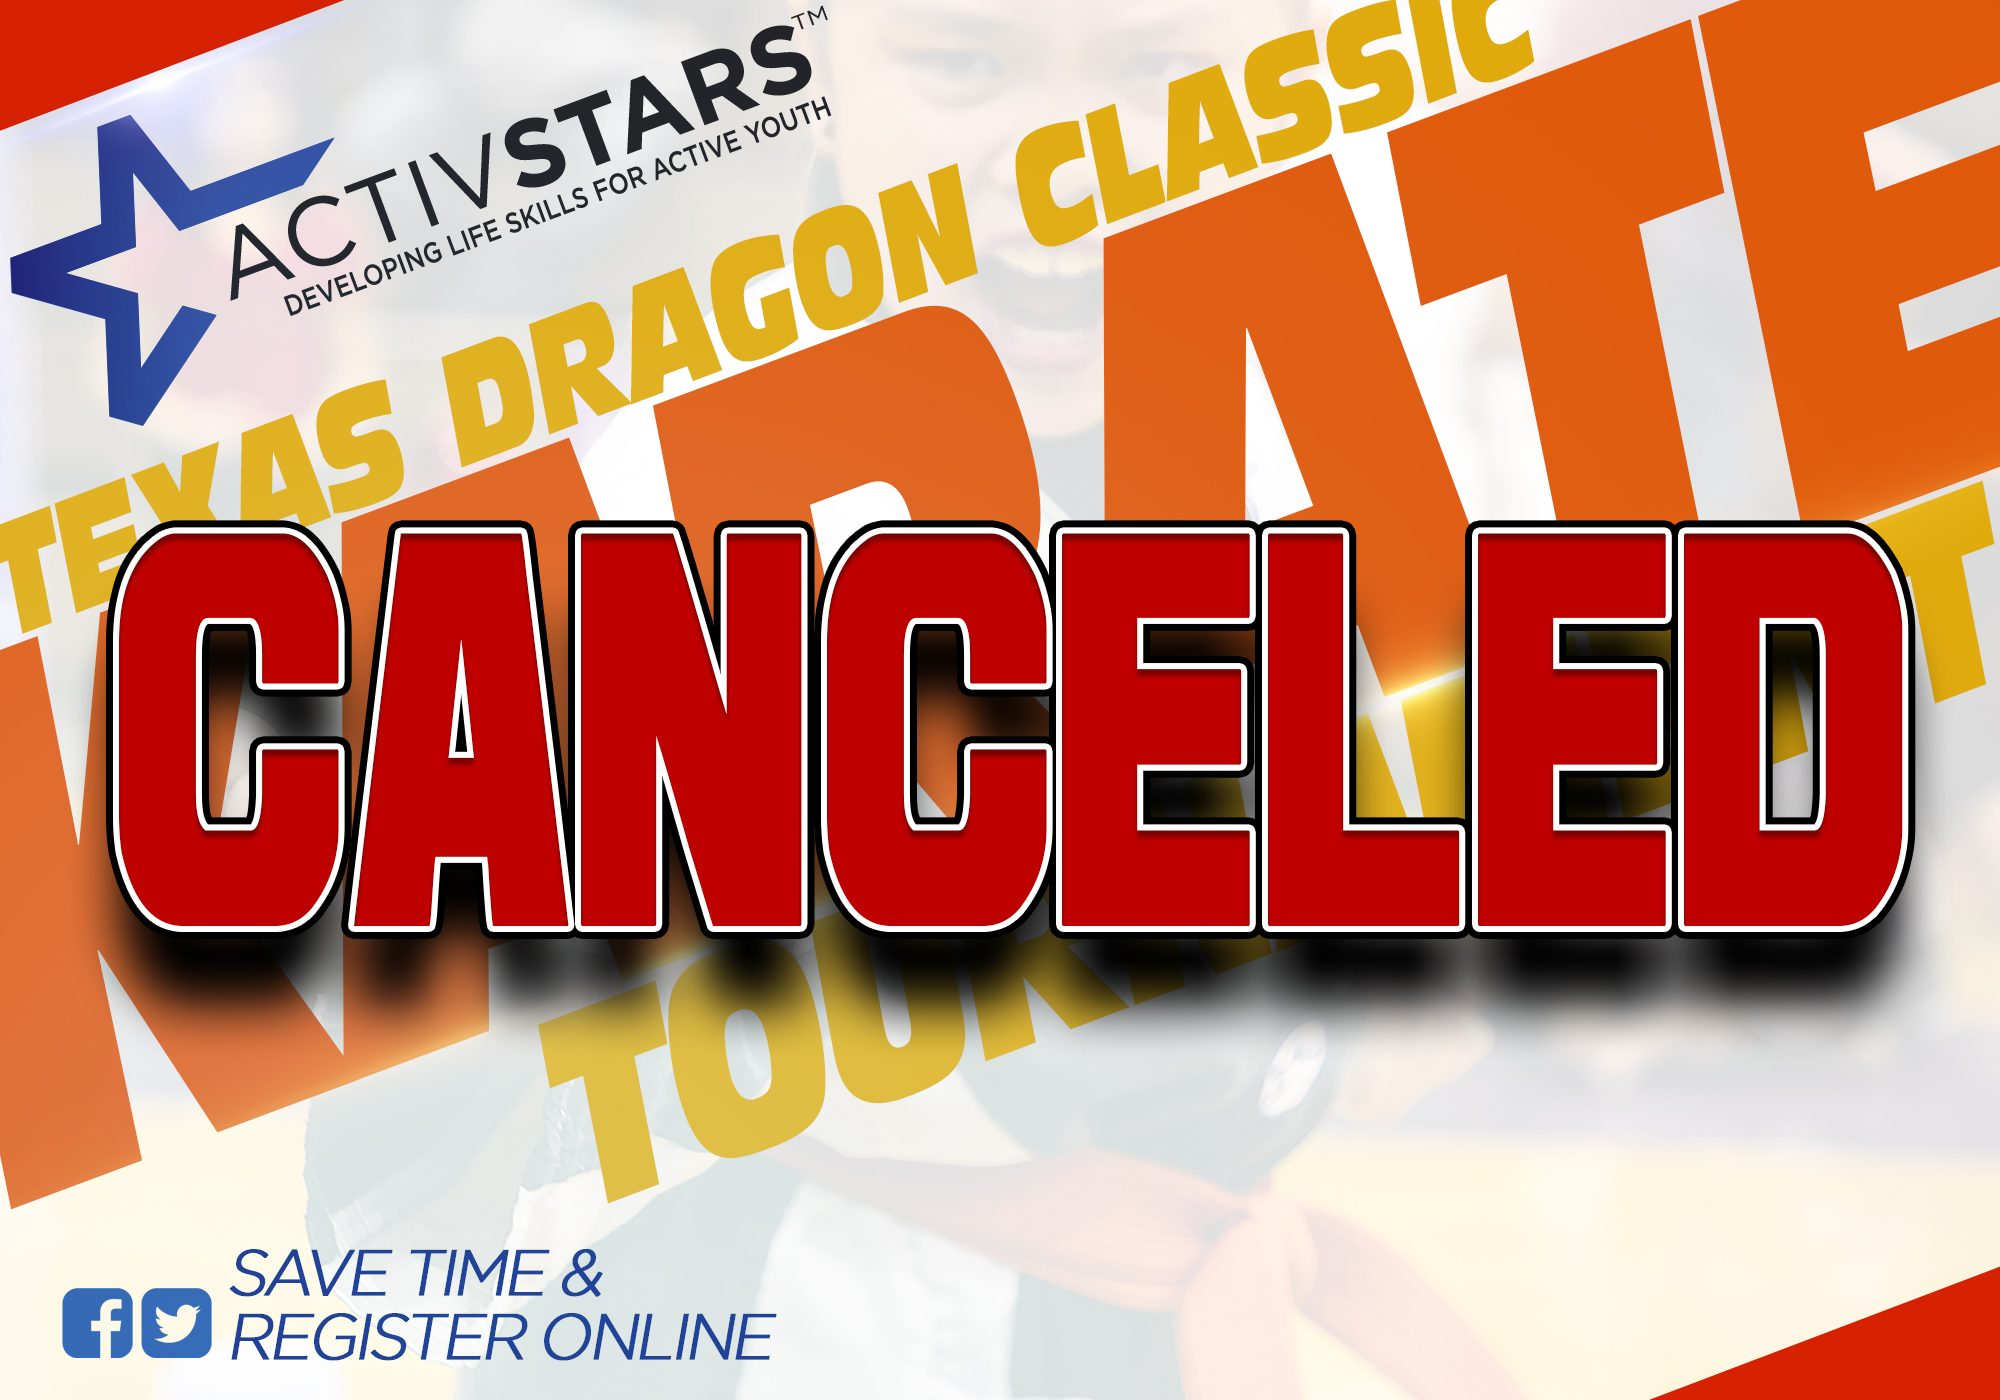 CANCELED-Valley-of-the-Sun-Karate-Tourny